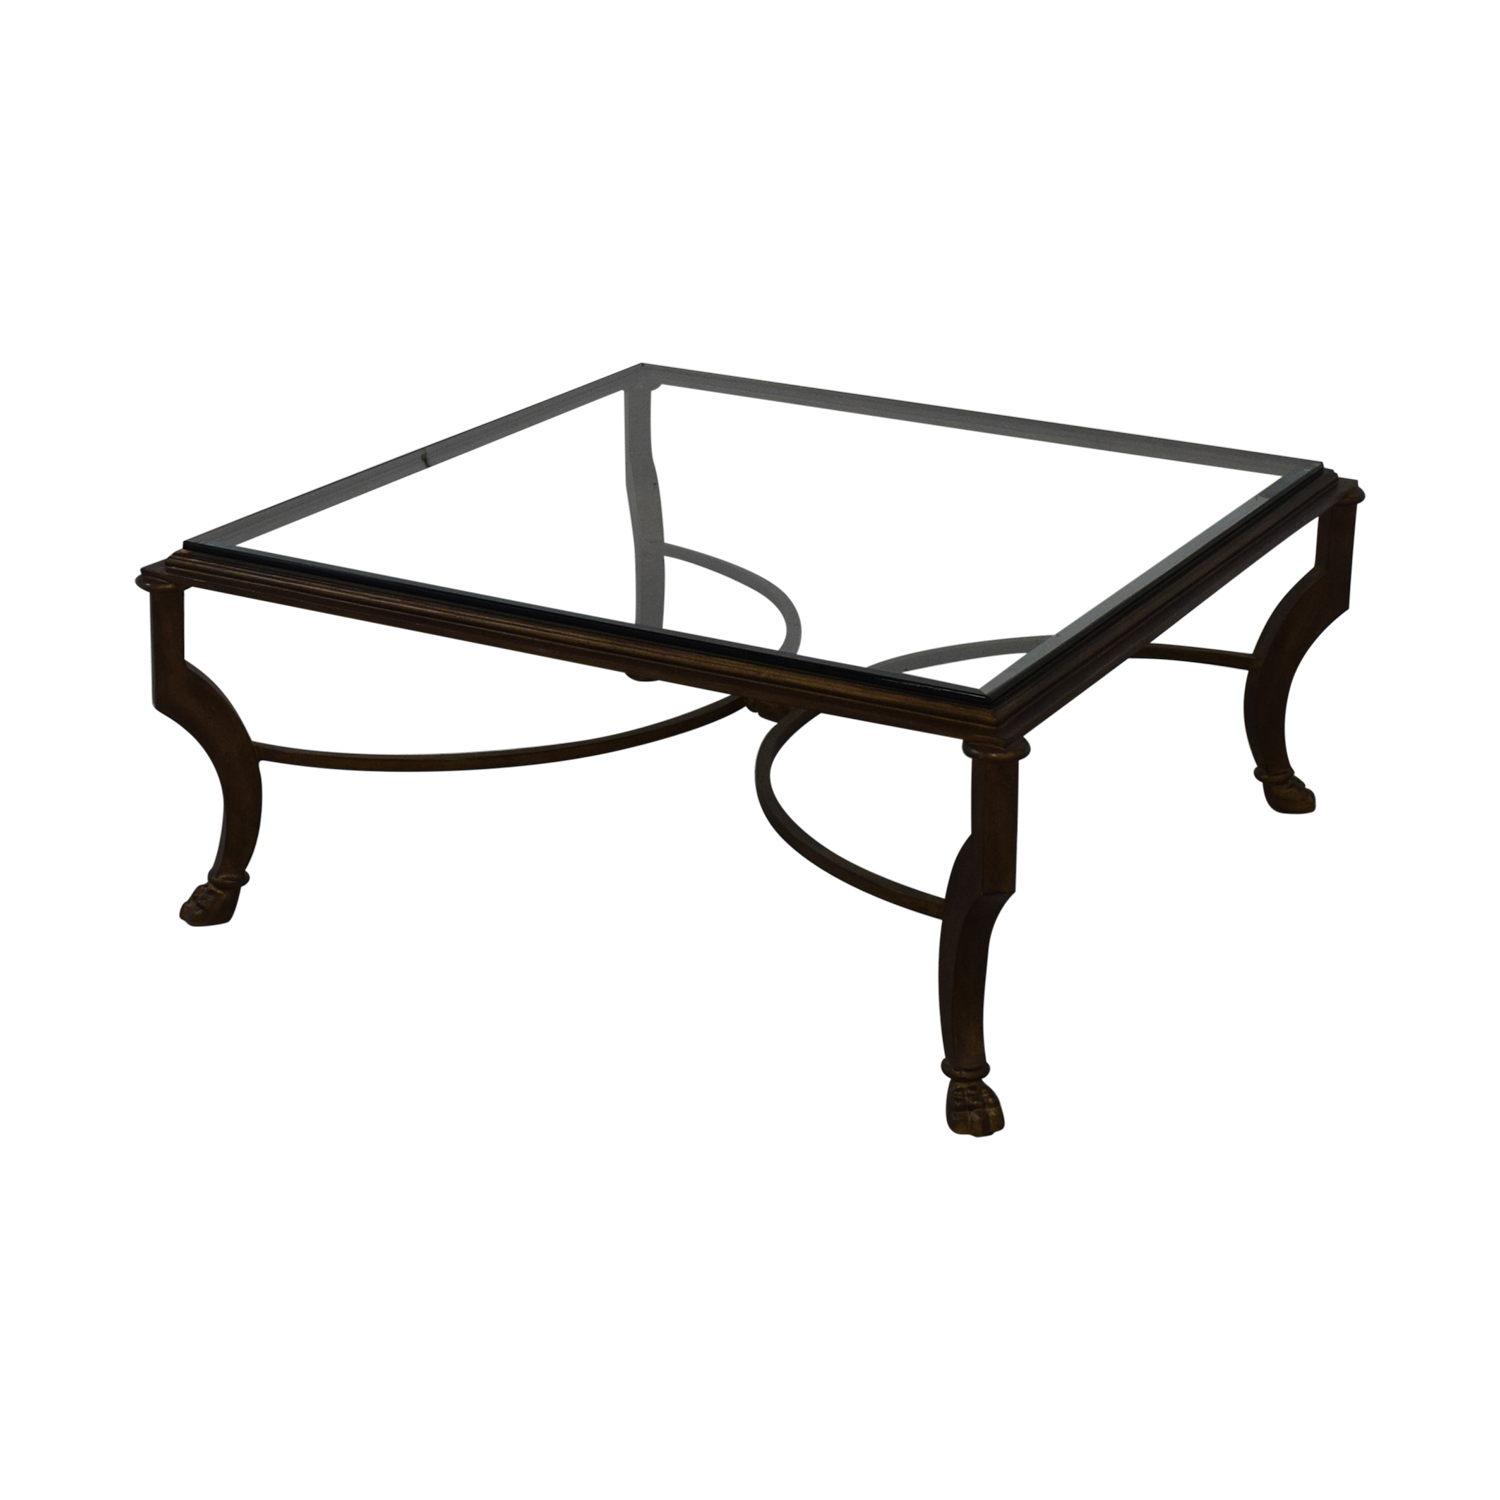 Kravet Kravet Glass Coffee Table price